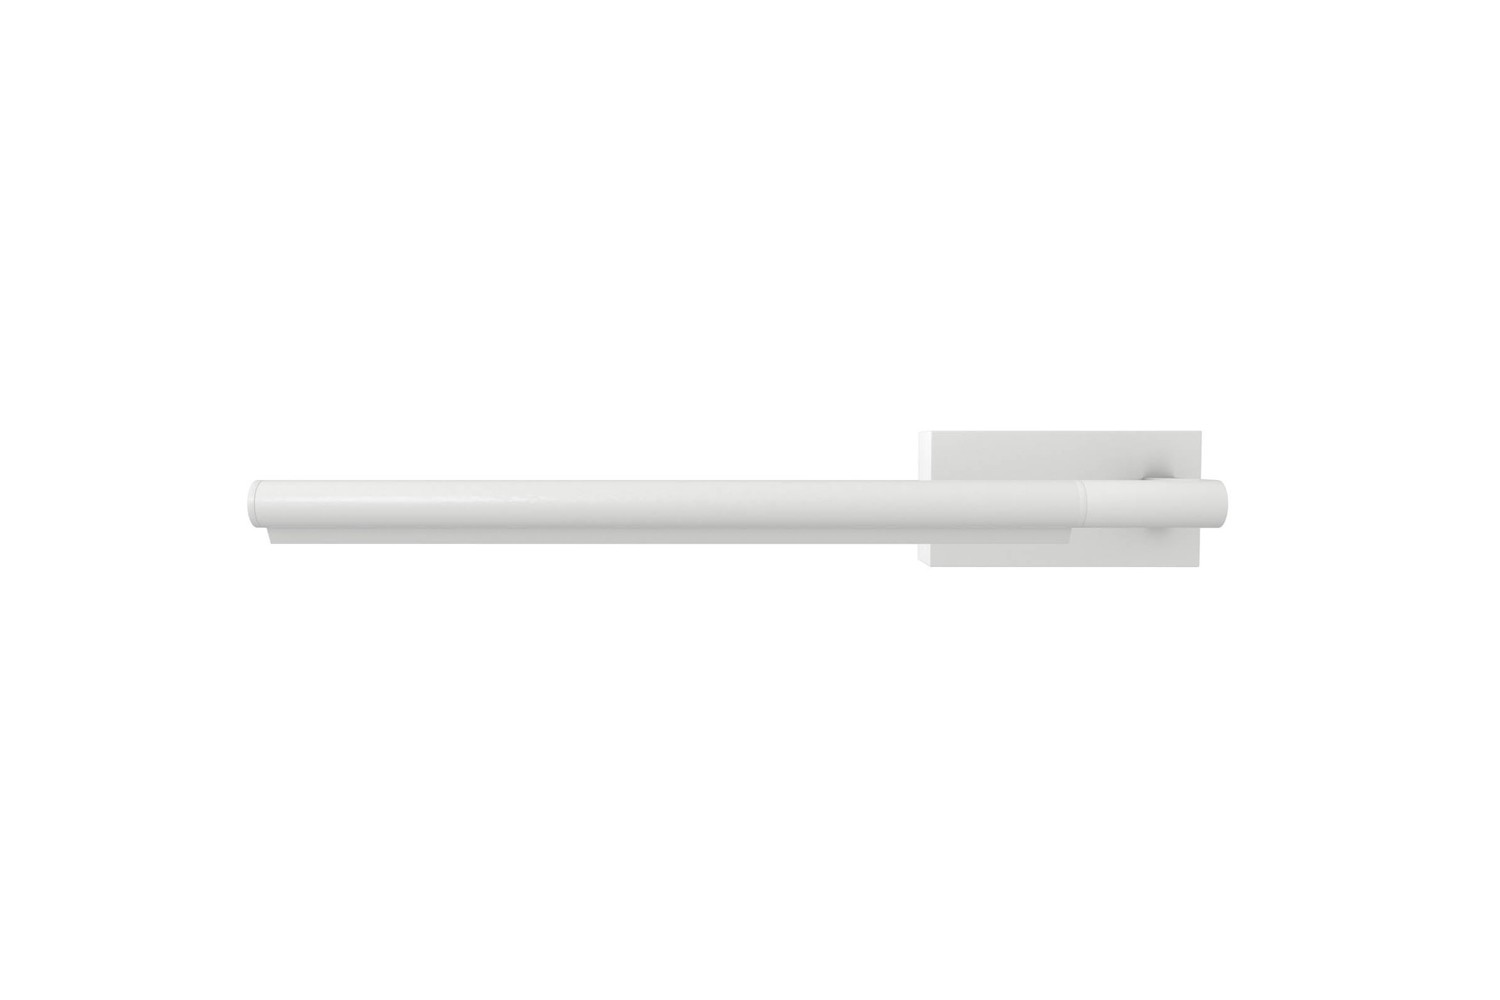 Slim Micro Wall Light 2700, White 00